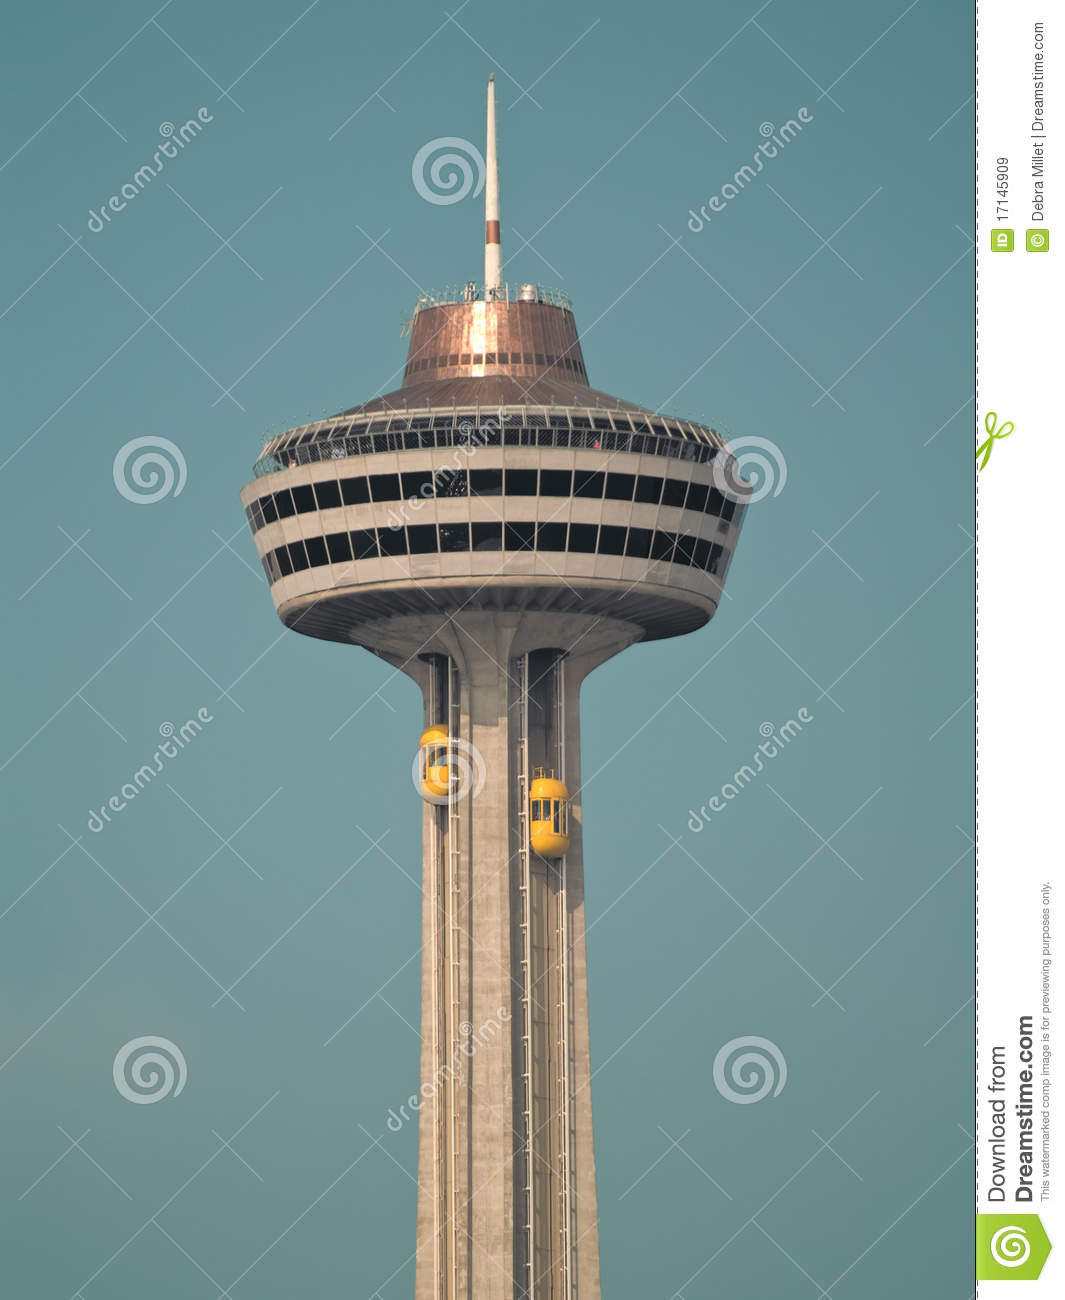 Skylon Tower Royalty Free Stock Images.